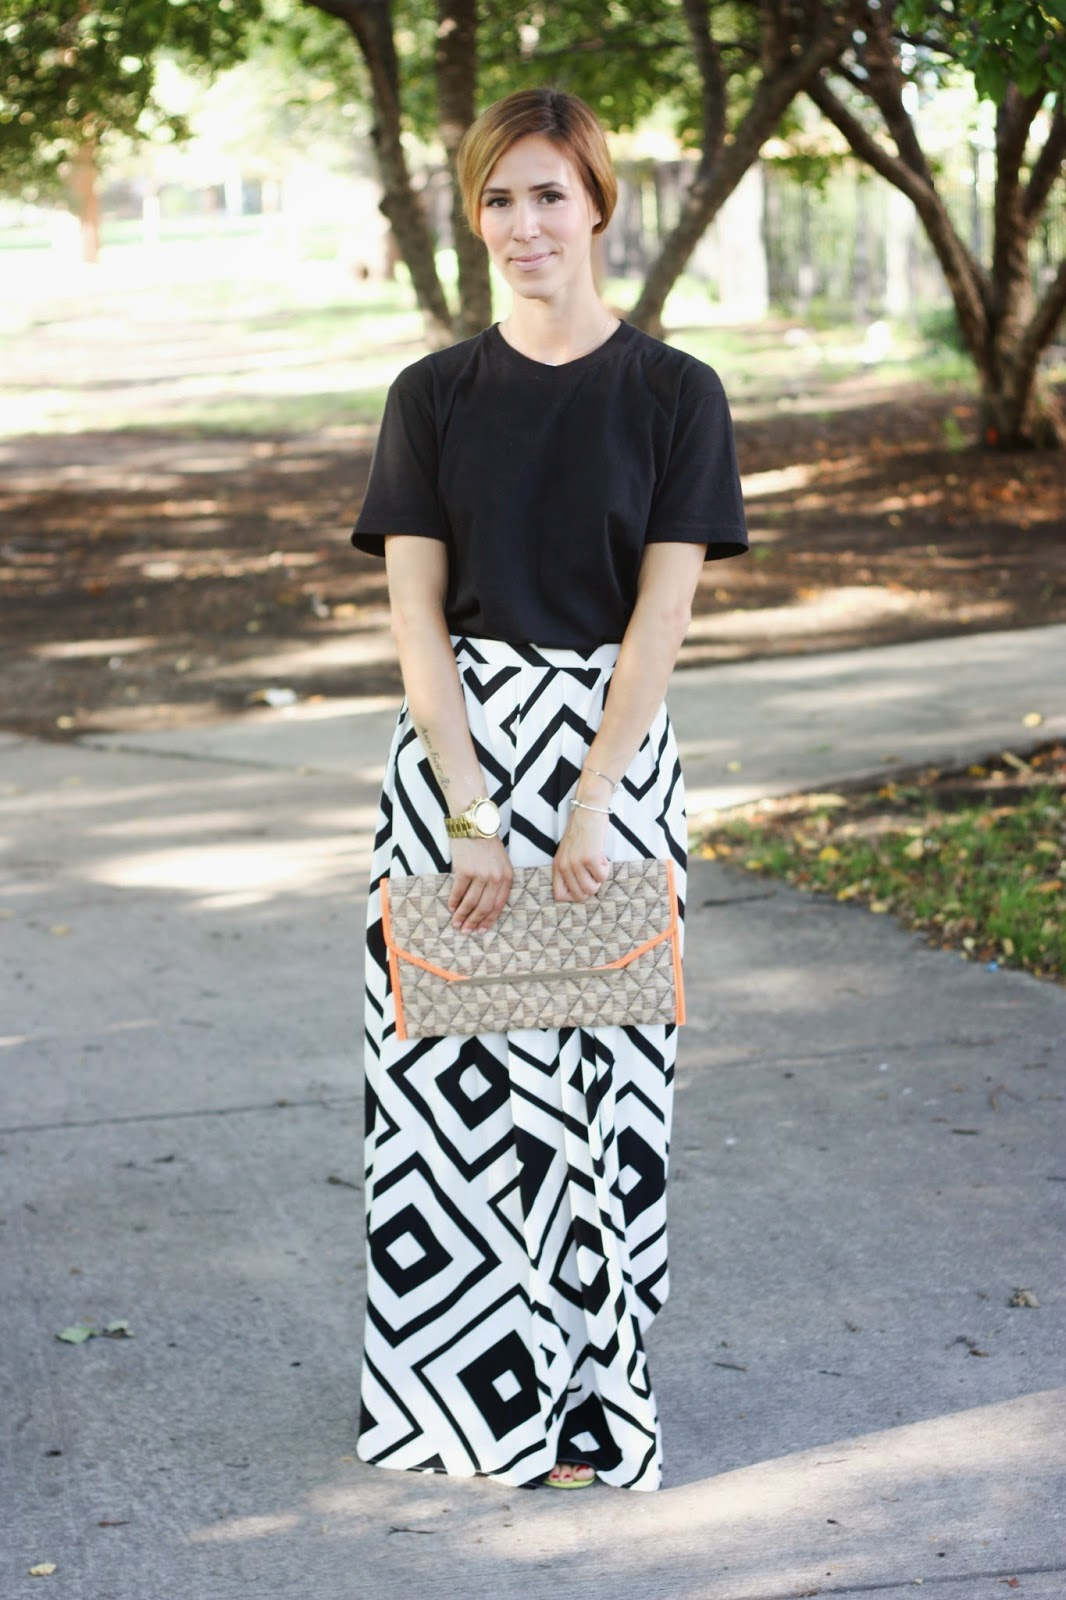 NYC, New York City, Eleven Paris, Eleven Paris tee, Eleven Paris McQueen tee, Old Navy, College Gameday, Gameday, College football, game-day fashion, game-day runway, The Limited, Limited clutch, Nordstrom, Norstrom printed maxi, nordstrom black and white maxi, old navy yellow wedges, old navy wedges